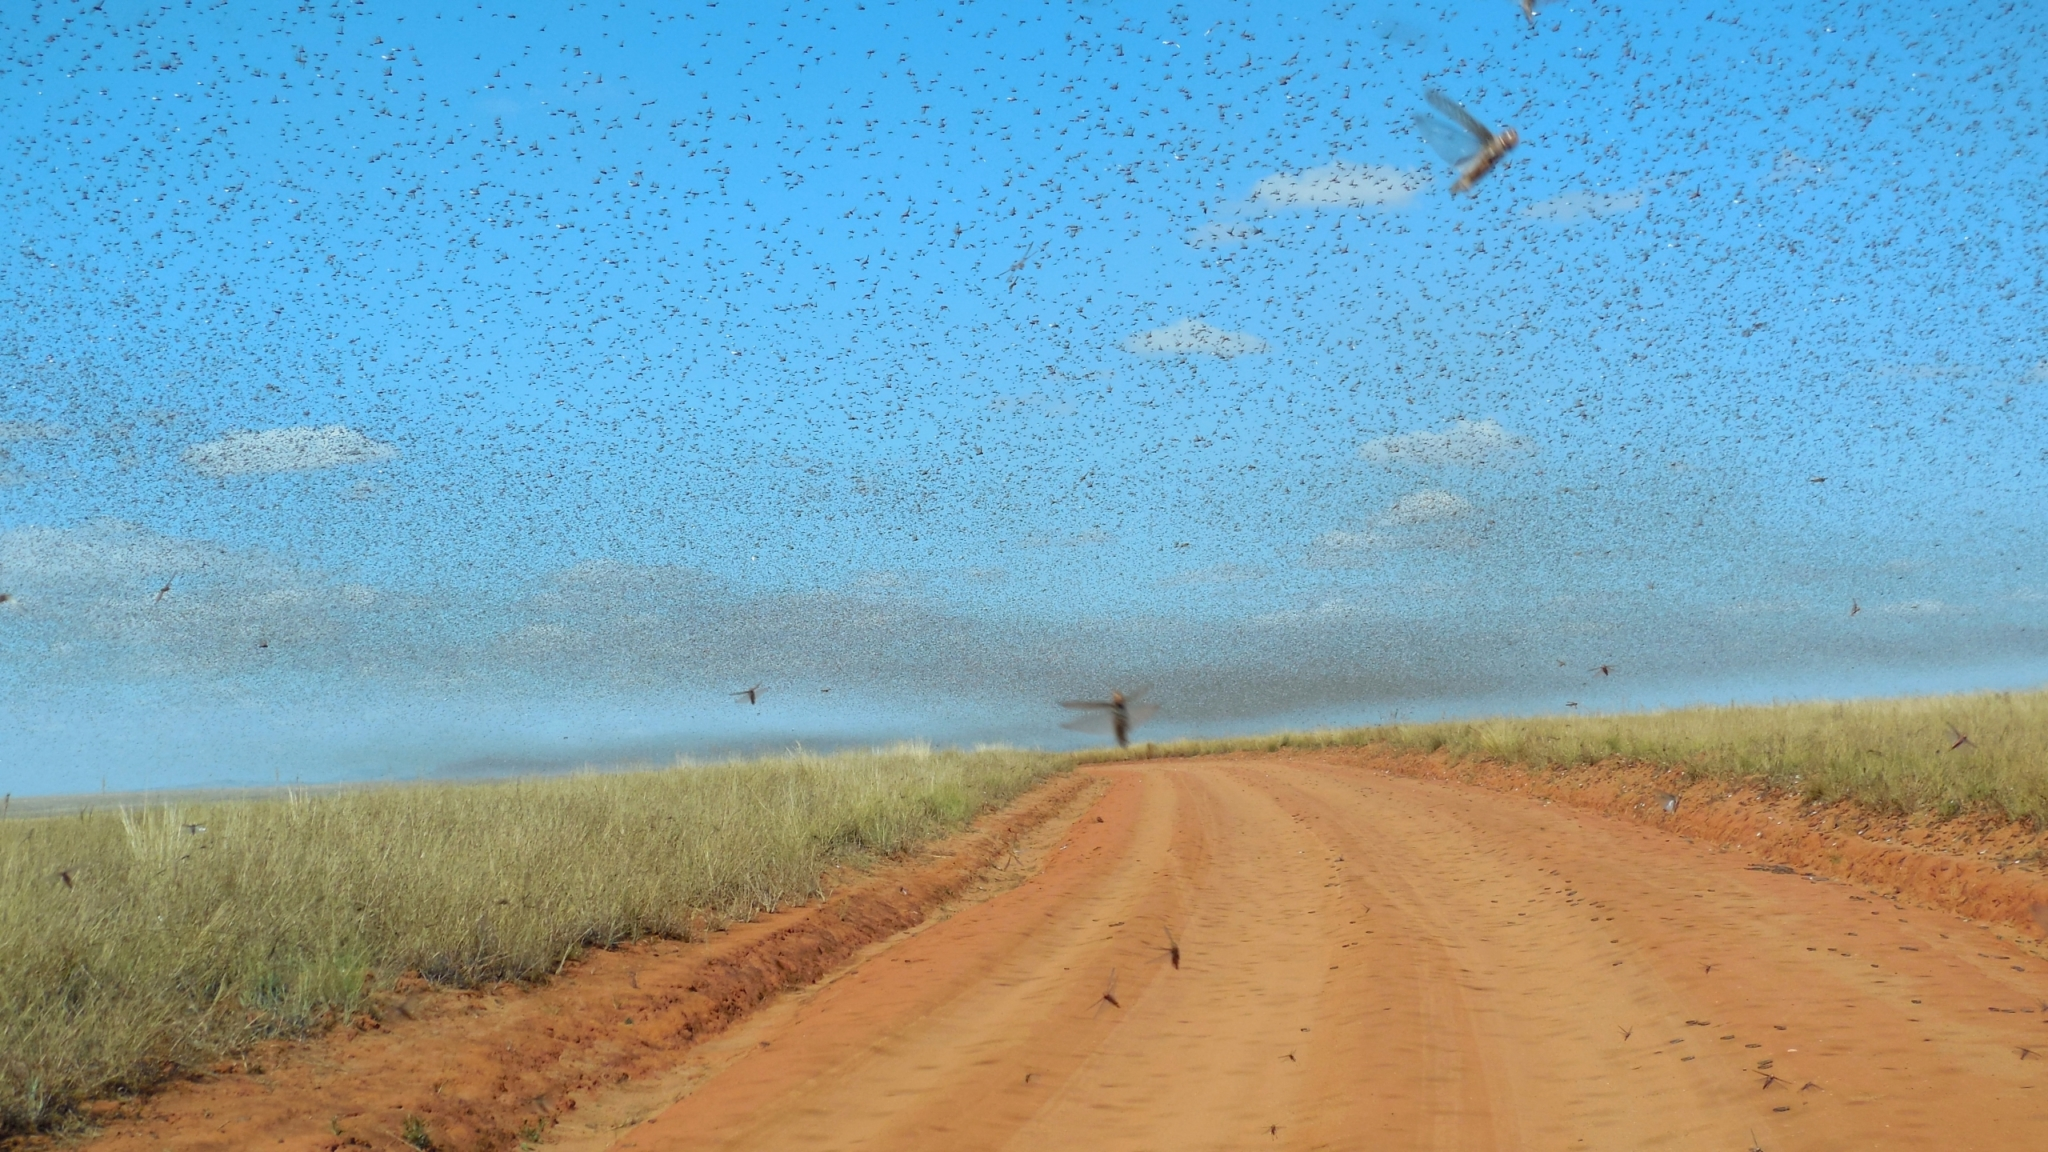 A plague of locusts flying